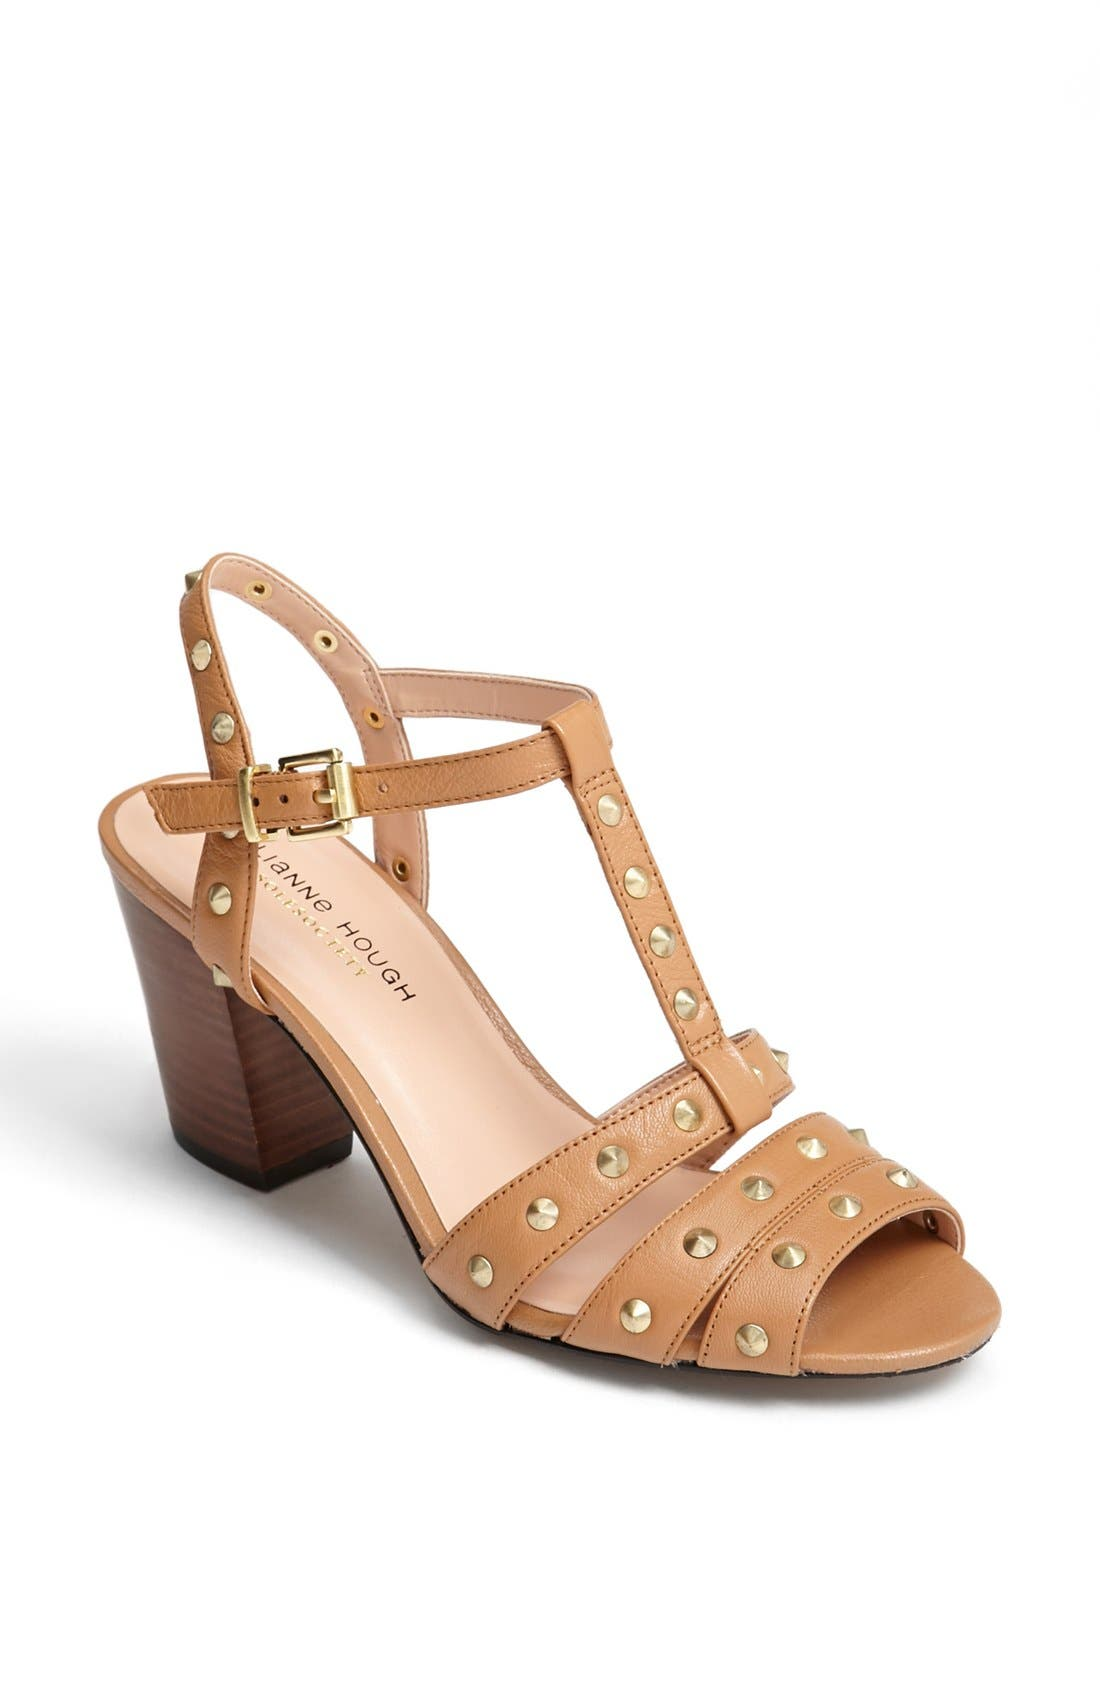 Main Image - Julianne Hough for Sole Society 'Mollie' Sandal